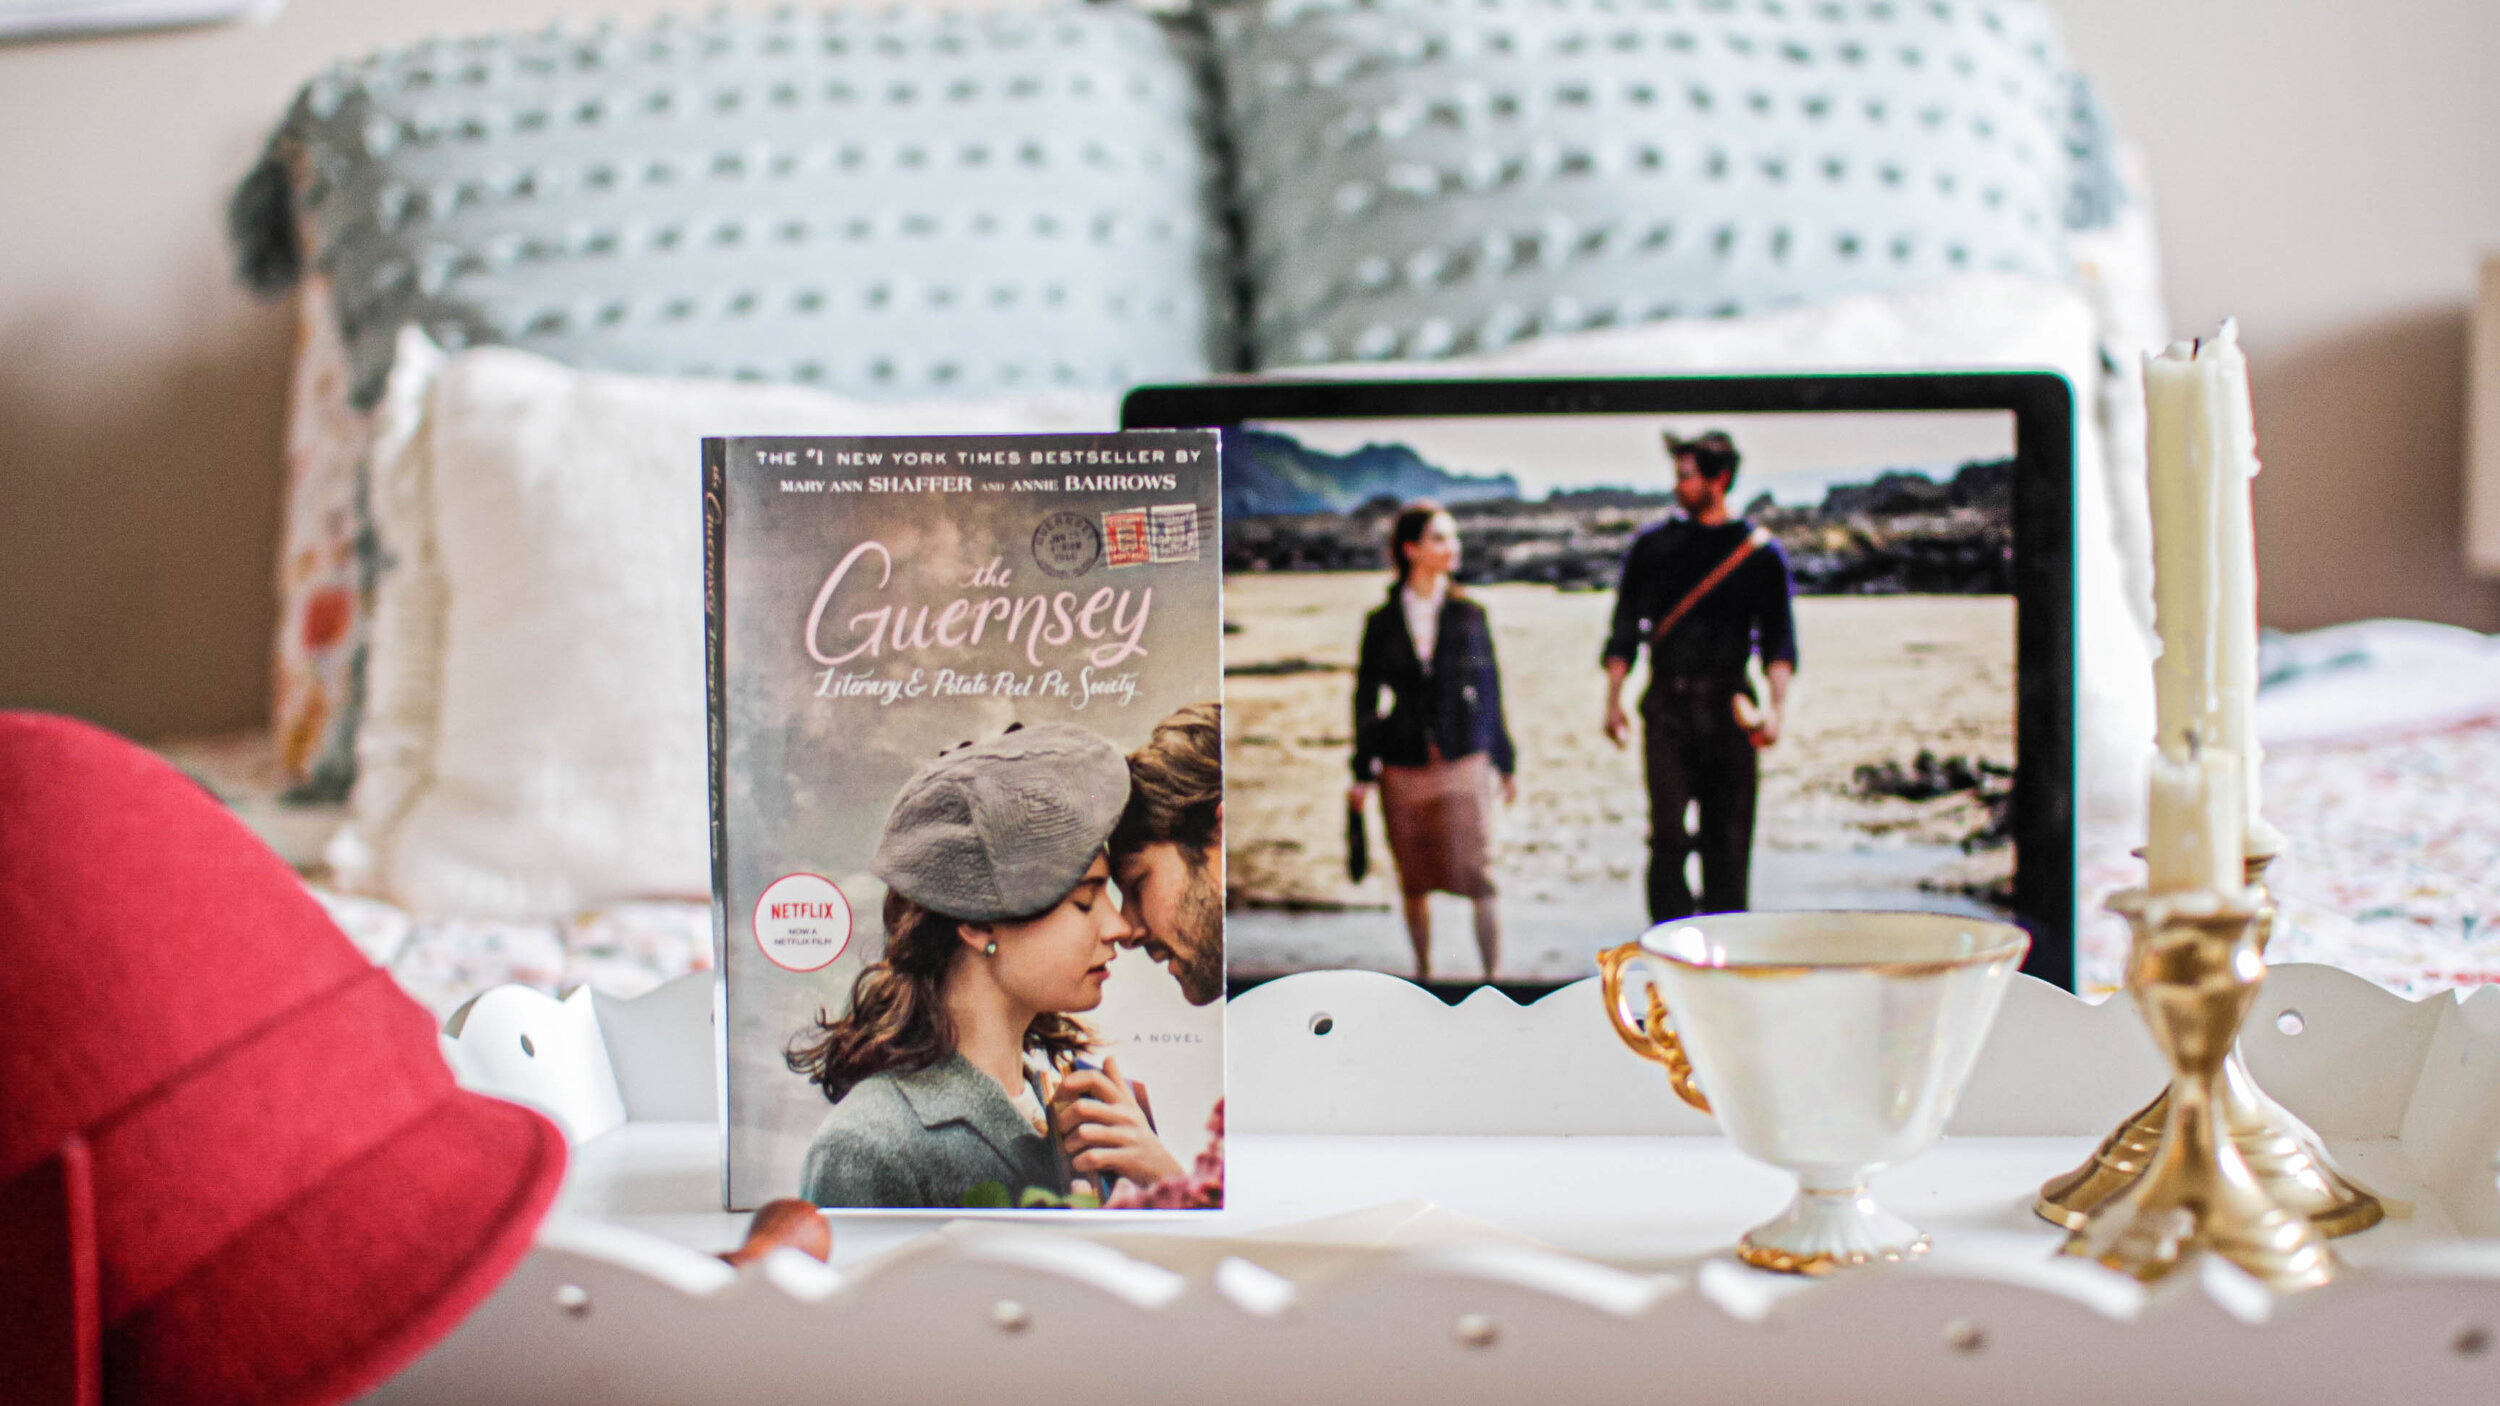 The Guernsey Literary and Potato Peel Pie Society World War II Love Story Movie and Book